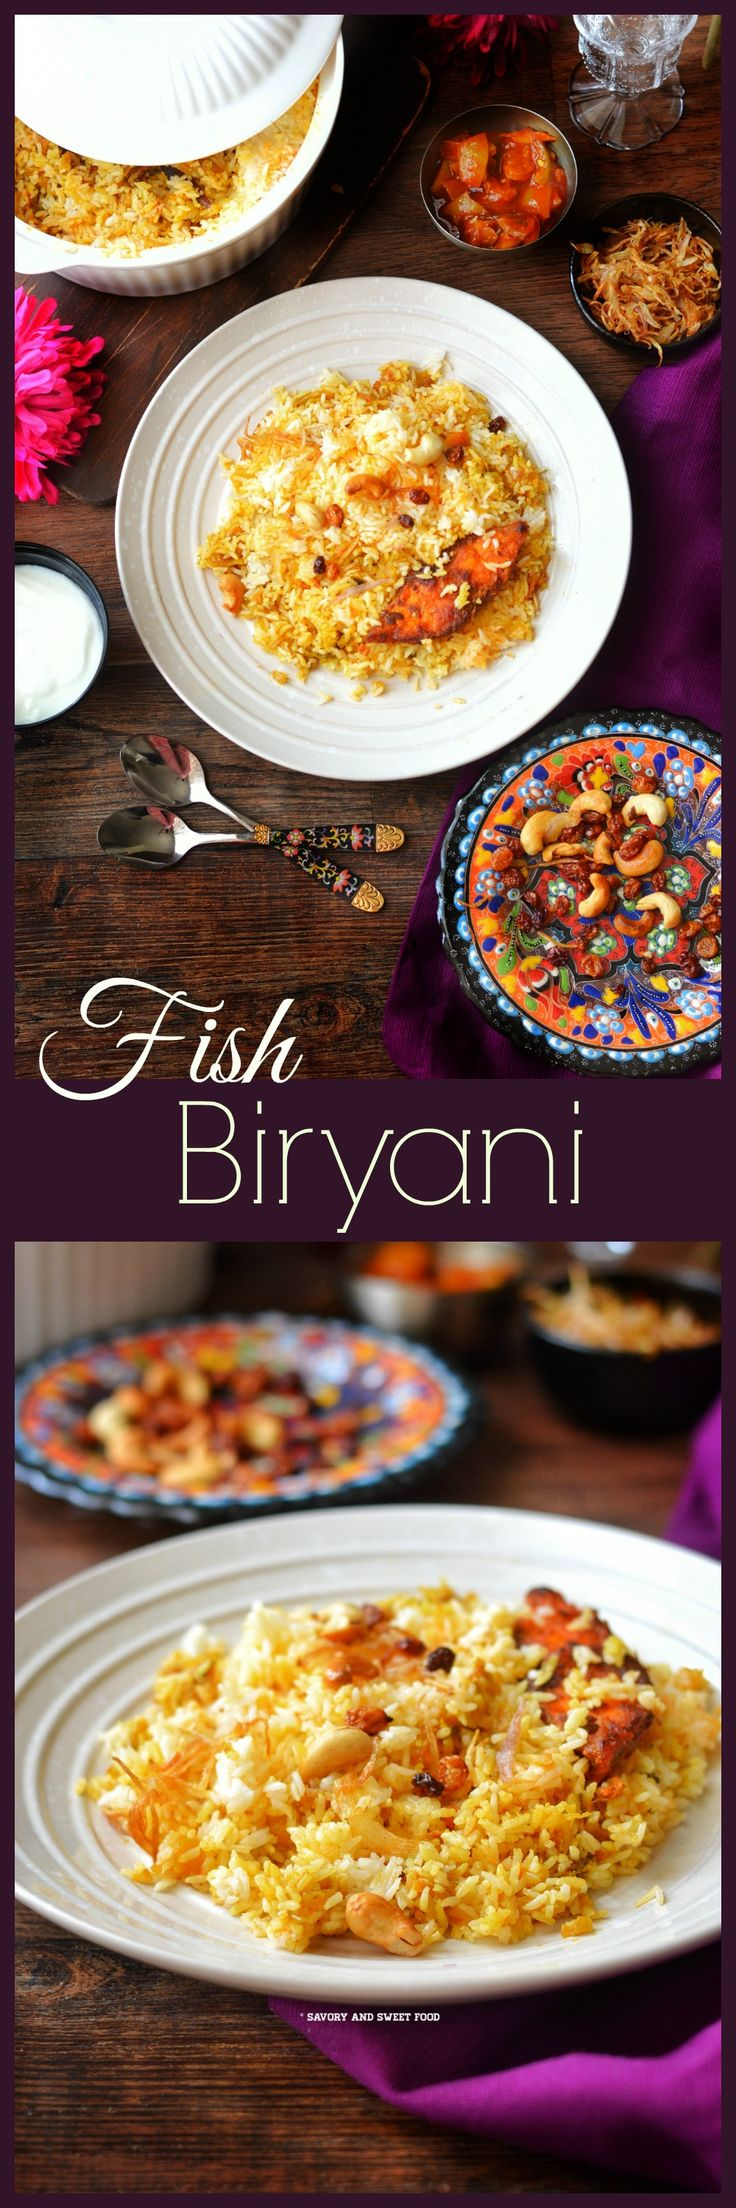 This fish biryani will be loved by both fish lovers and haters. A dish that would be perfect for a family gathering or just to enjoy your weekend with your loved ones.